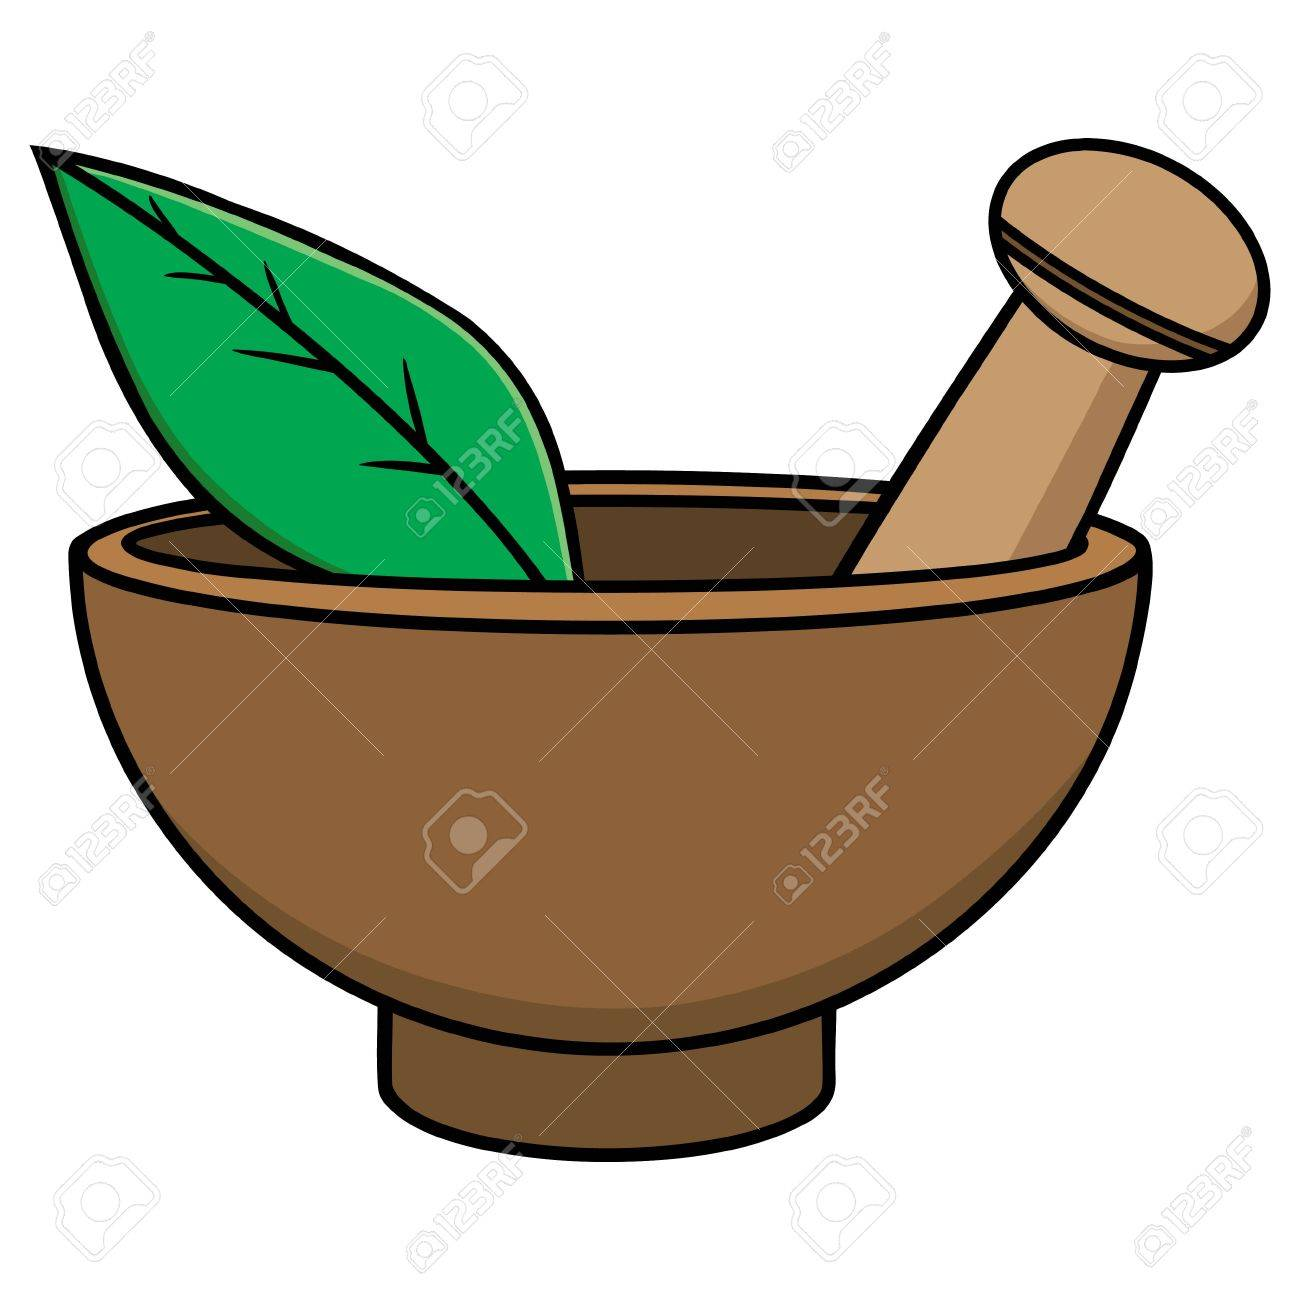 Image result for pestle clipart